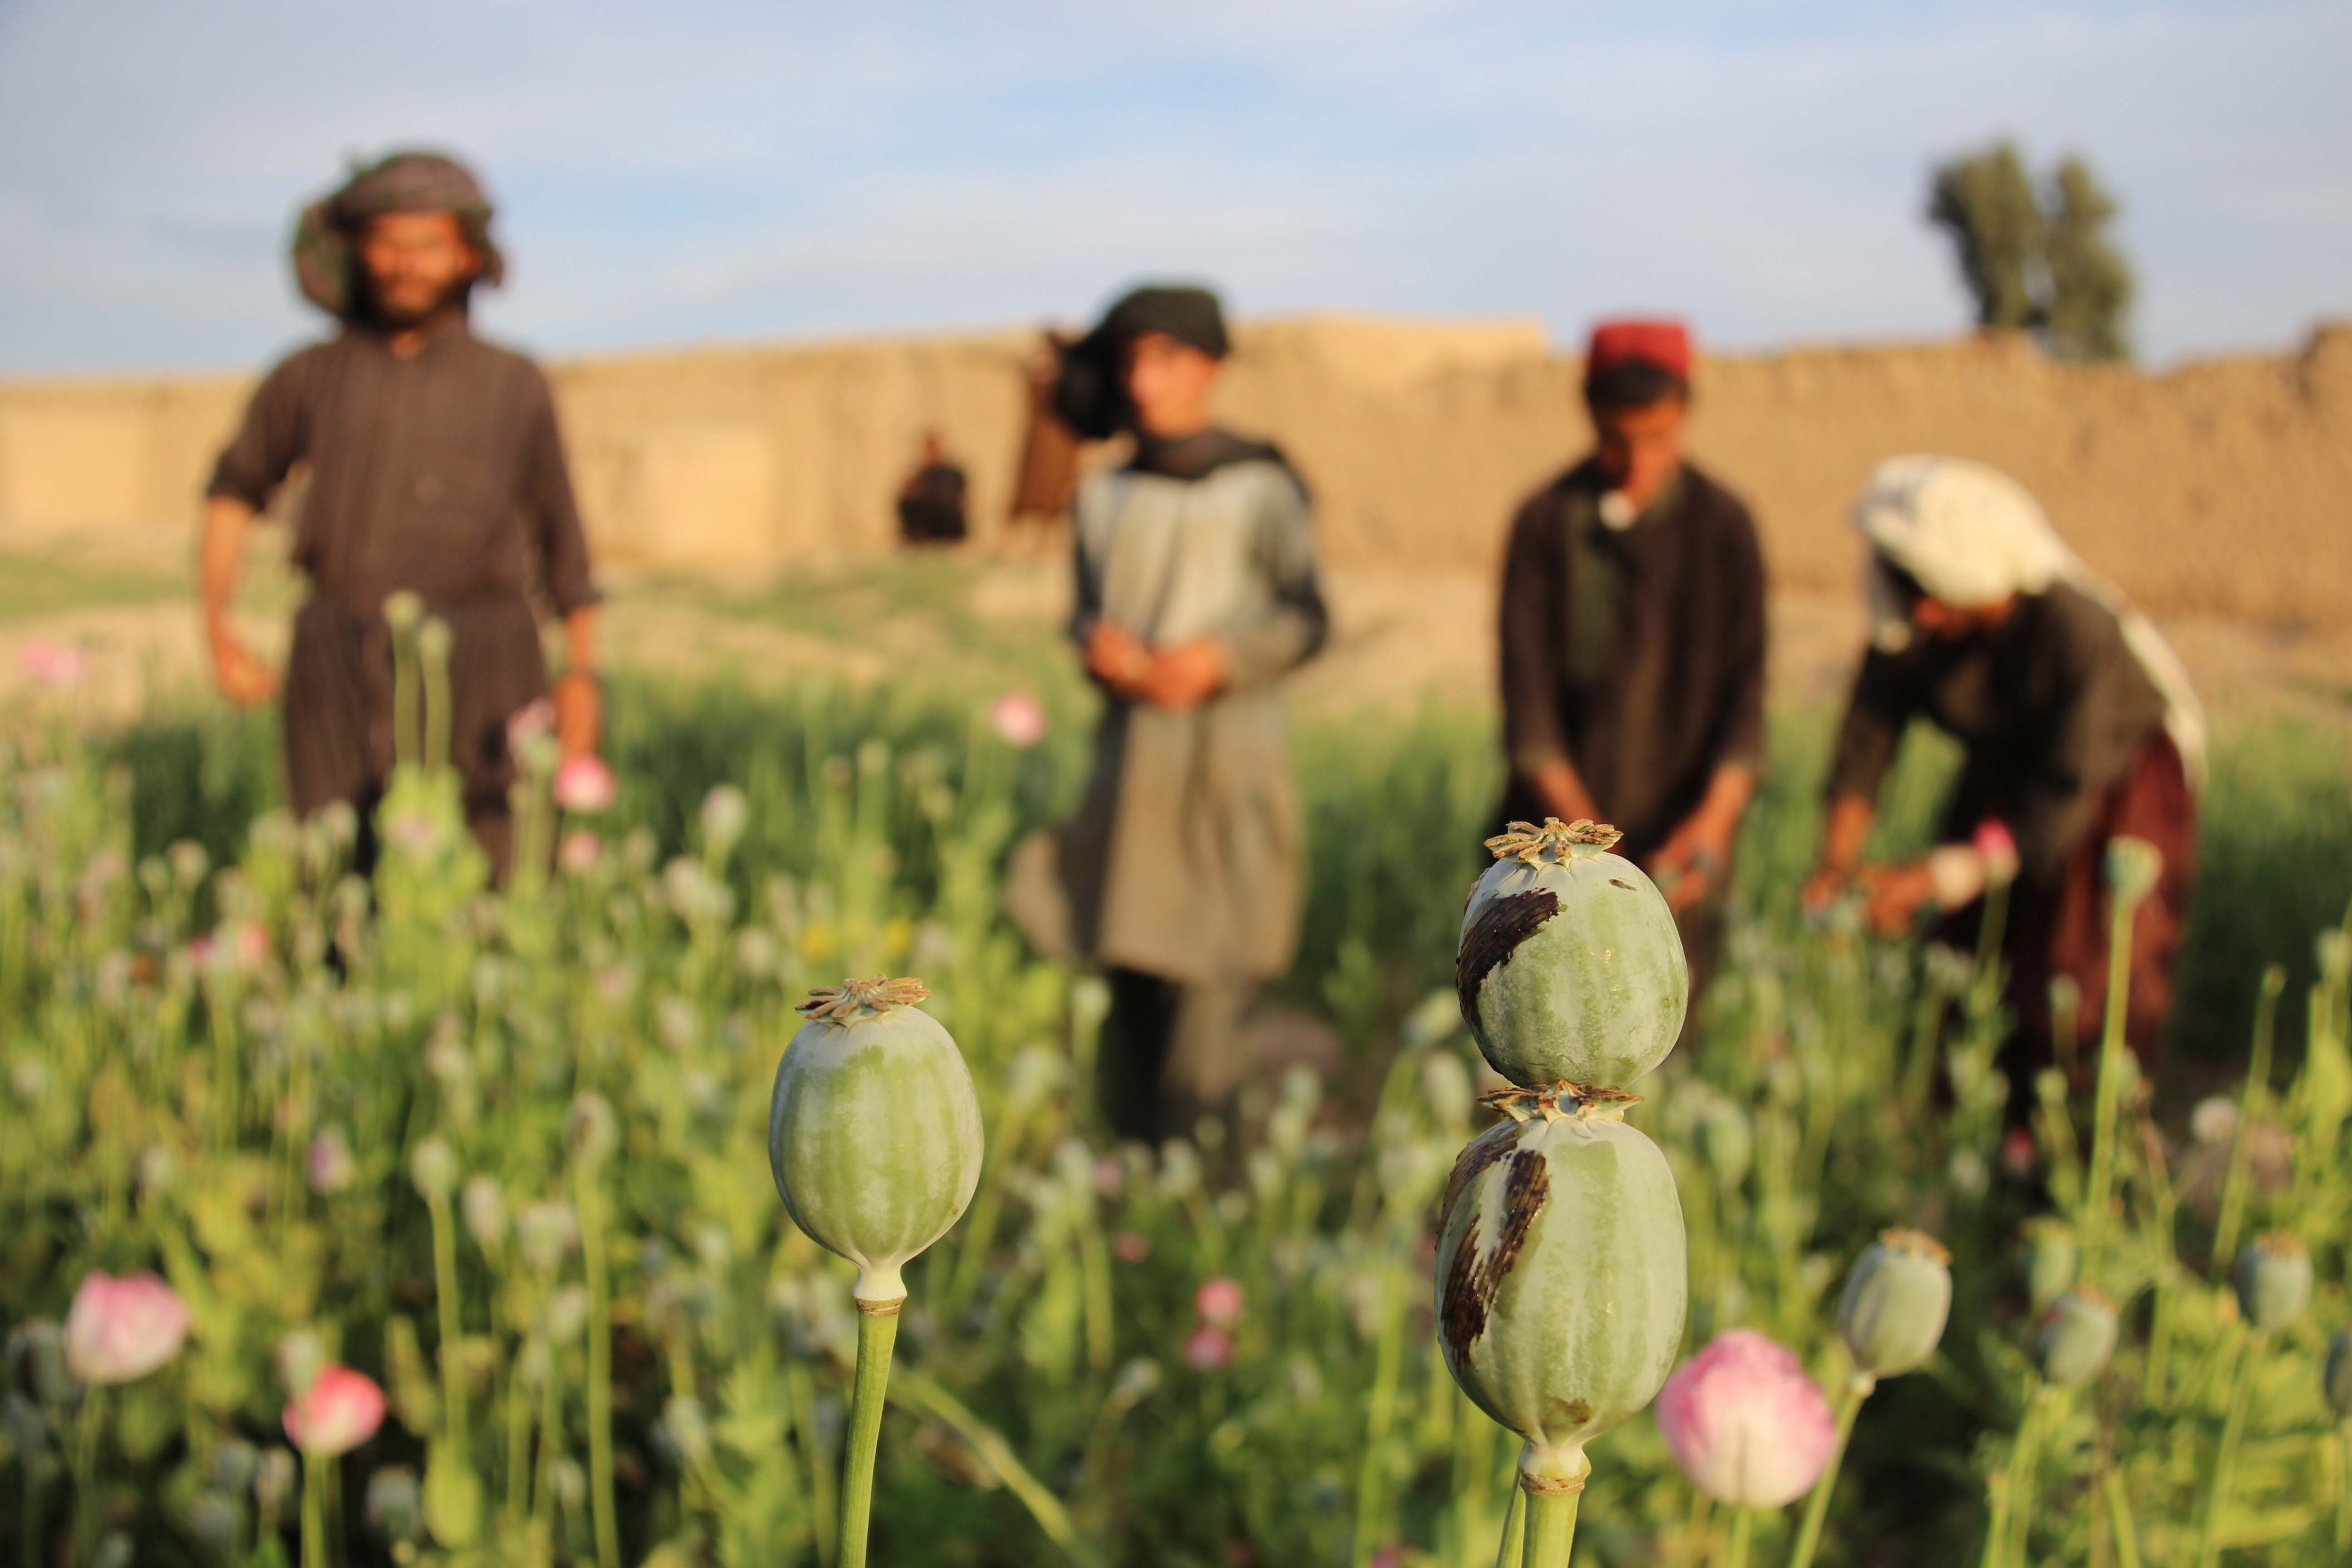 According to reports, opium production in Afghanistan grew by 87 percent in last two years.